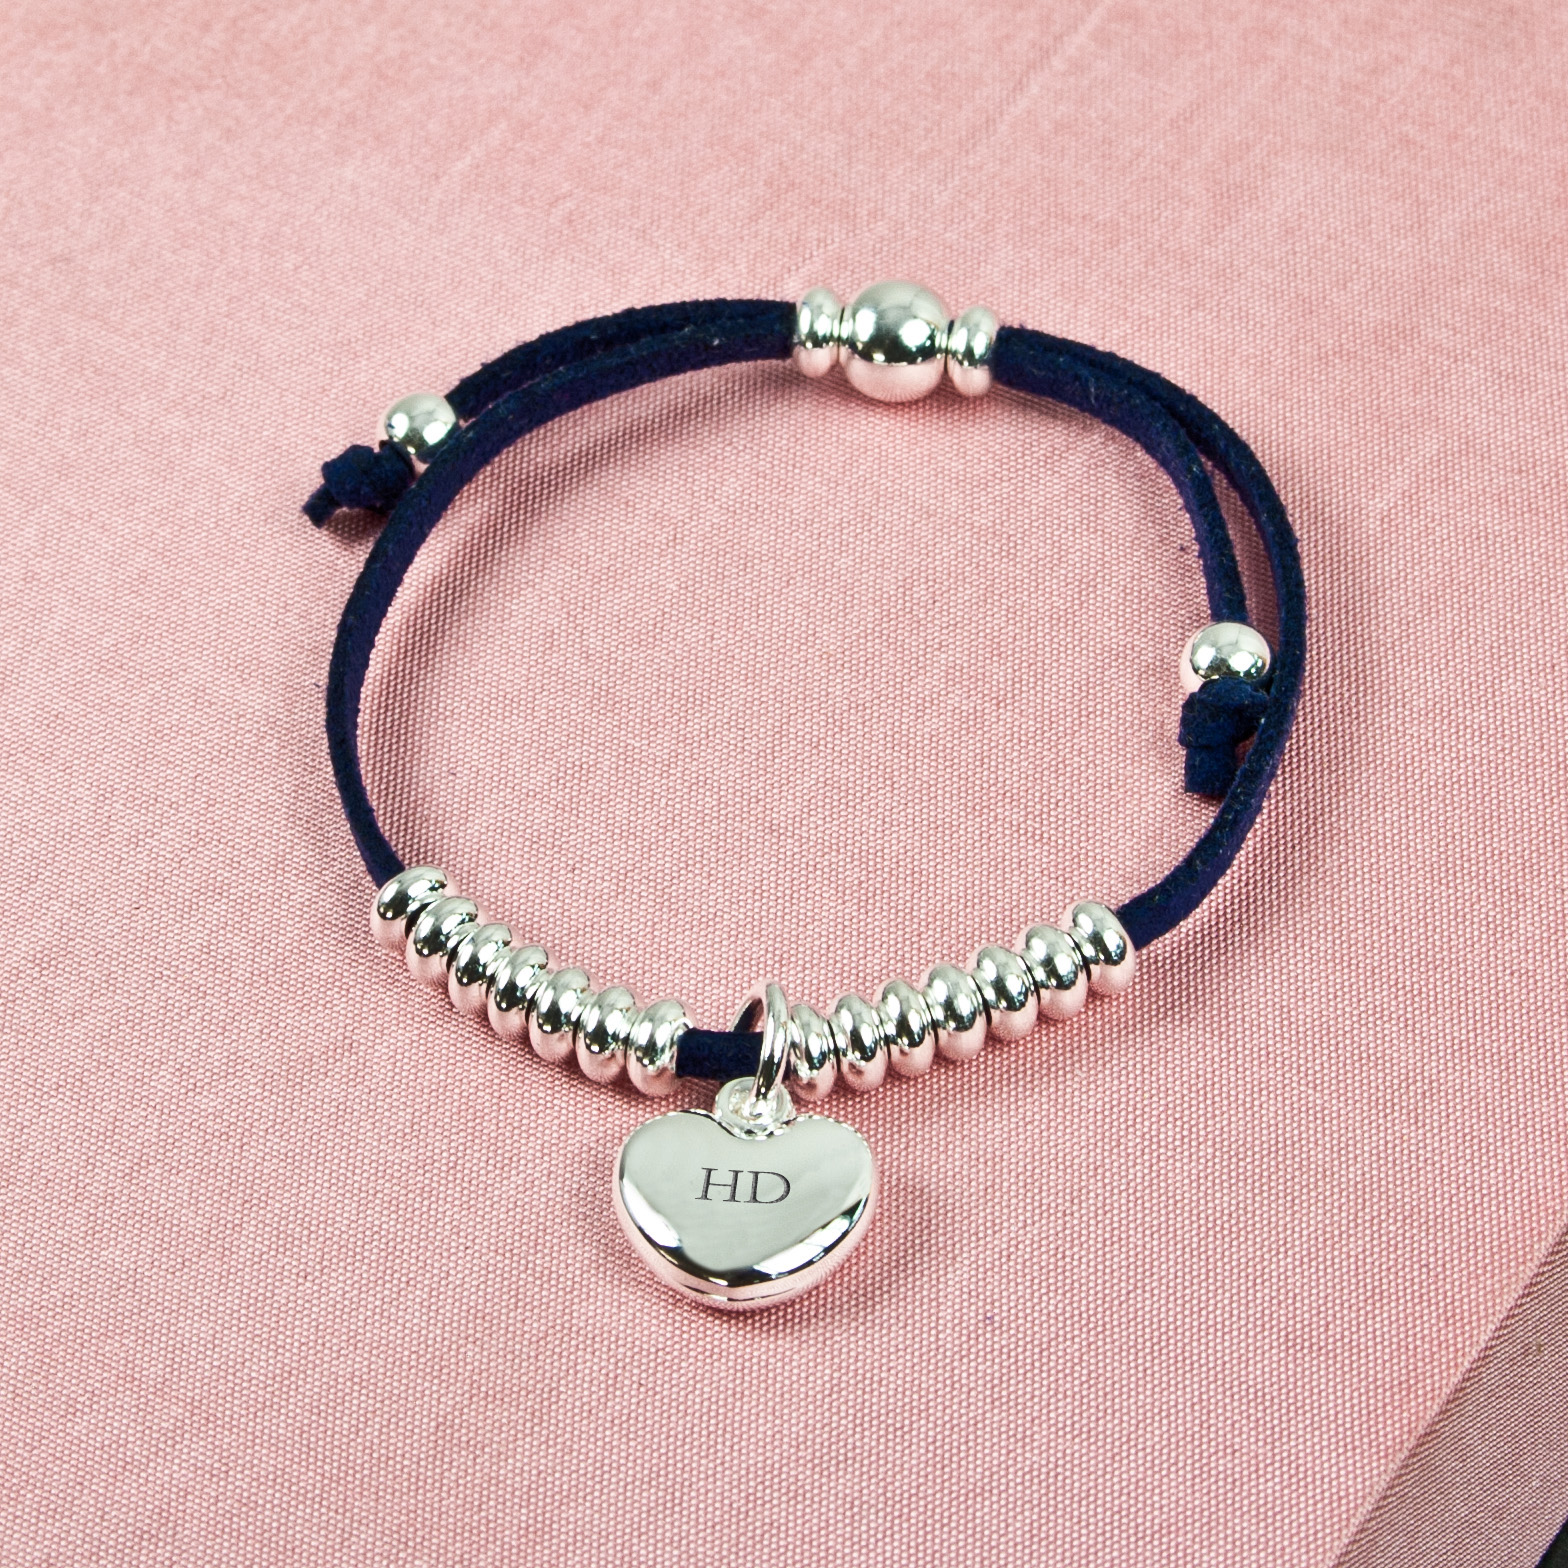 Personalised-Heart-Friendship-Bracelet